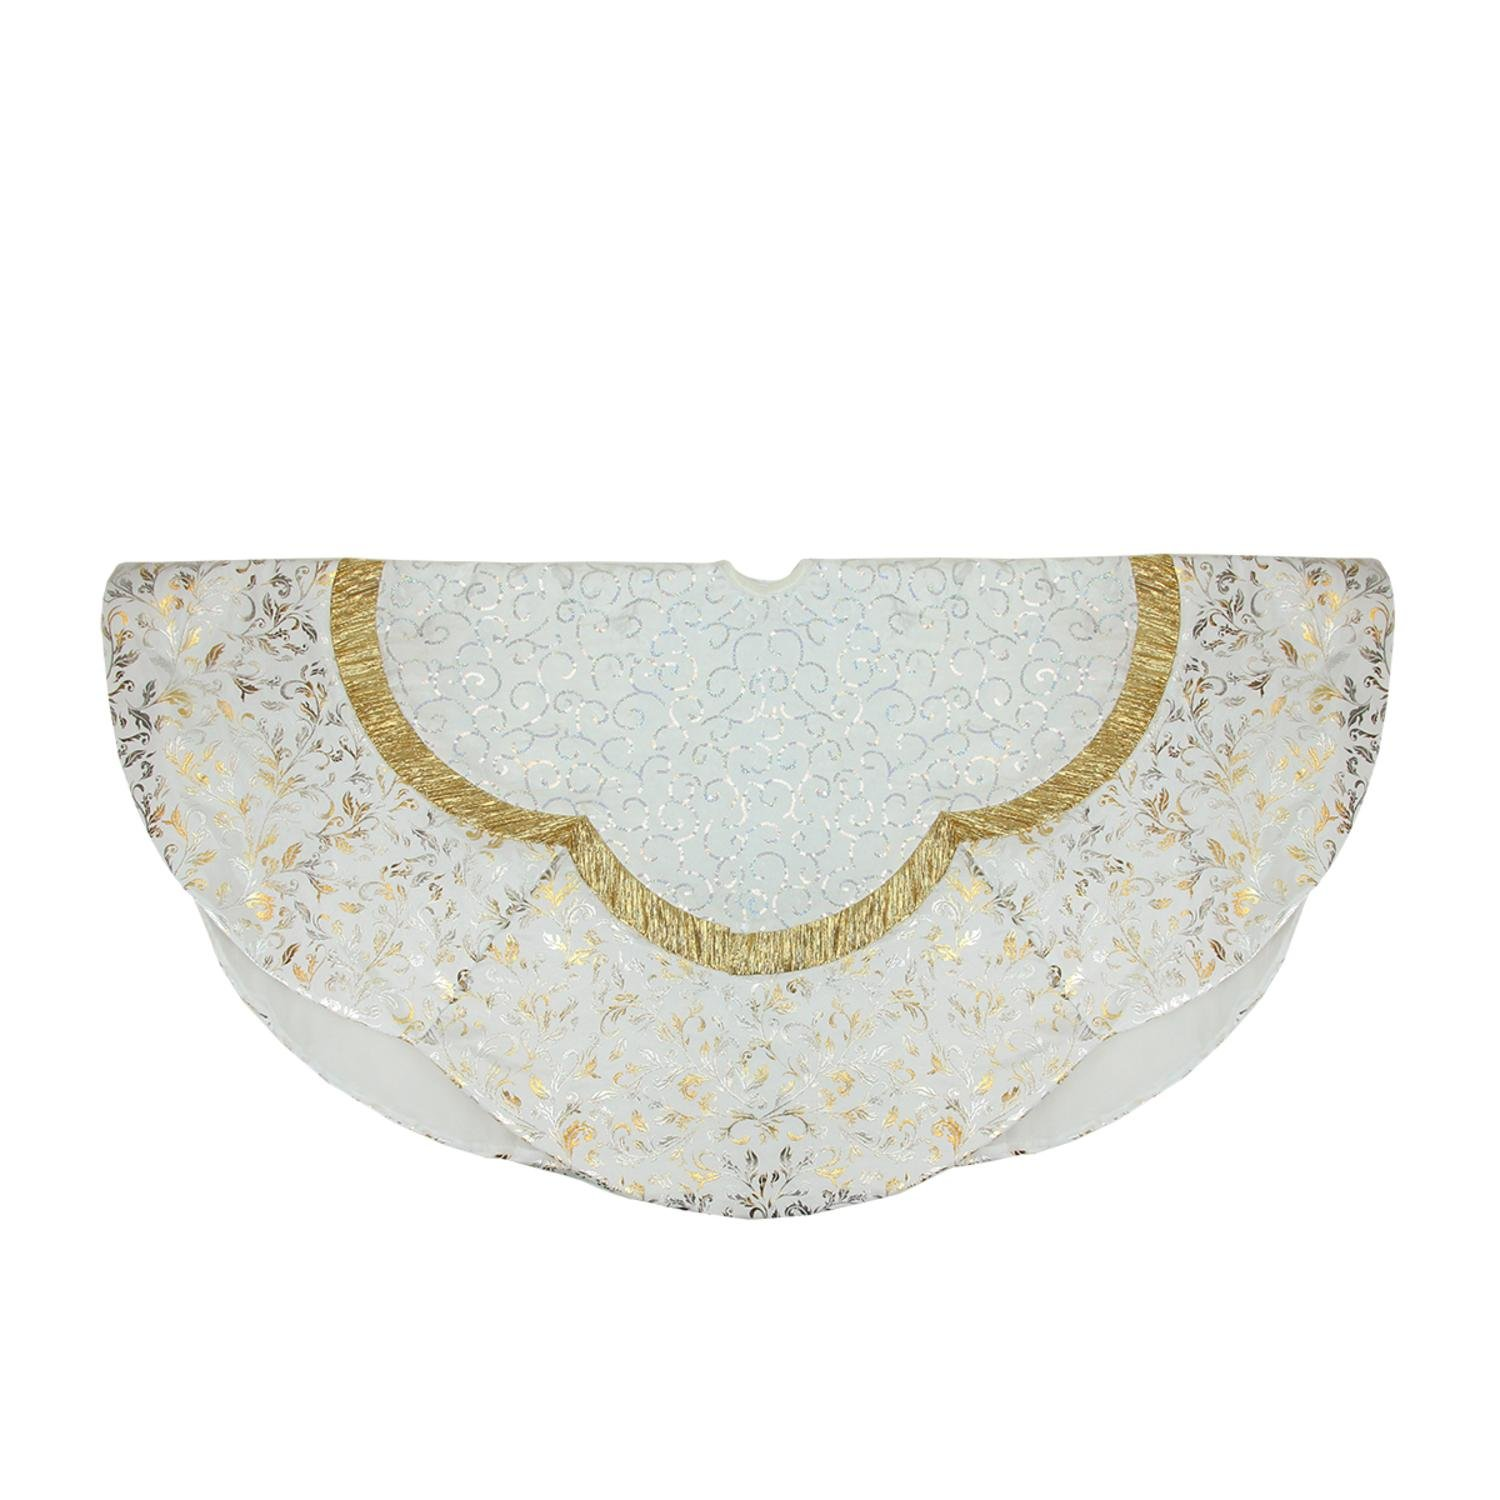 Northlight 48'' White Sequin and Metallic Silver Ombre Flourish Scallop Christmas Tree Skirt Accessories, Gold by Northlight